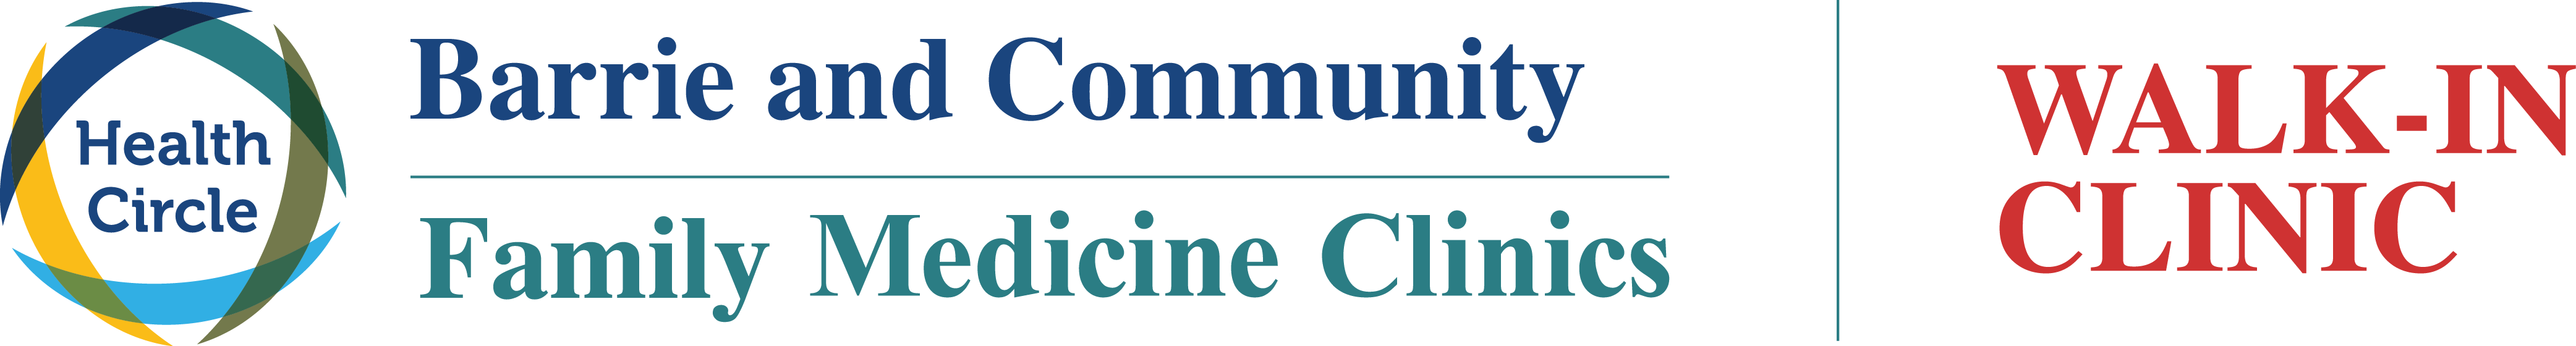 Barrie and Community Family Medicine Clinic